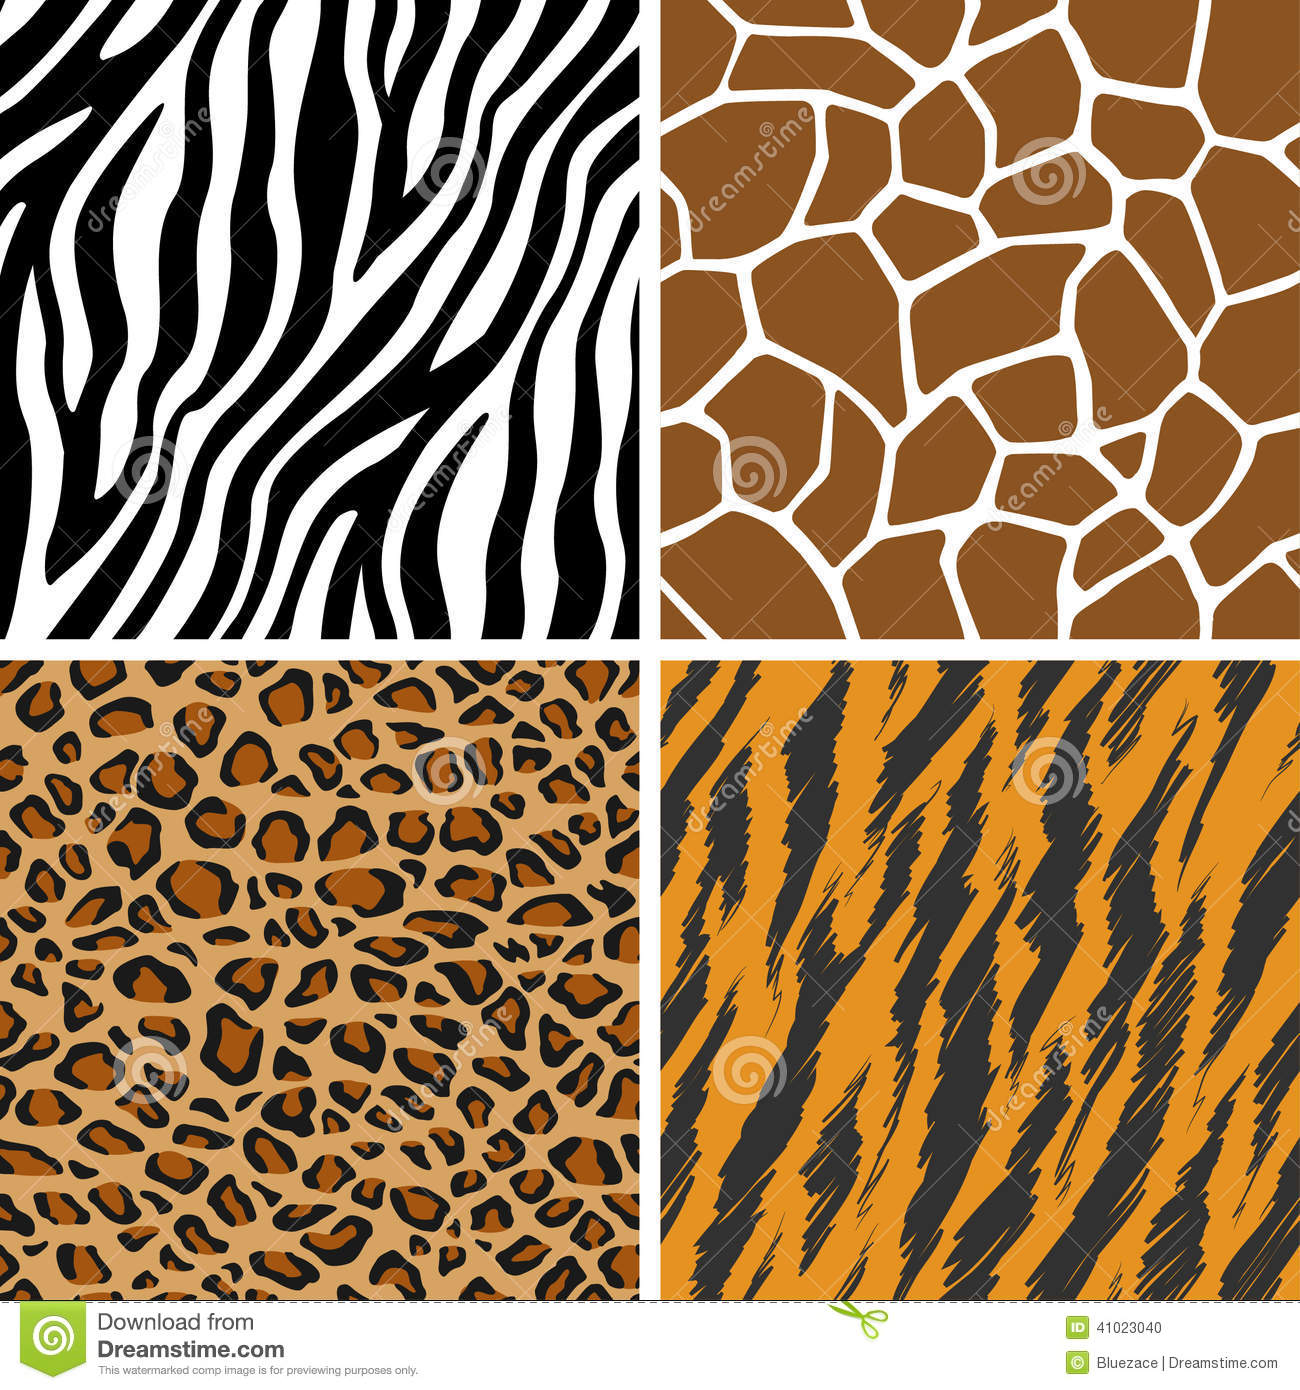 animal skin patterns giraffe - photo #18